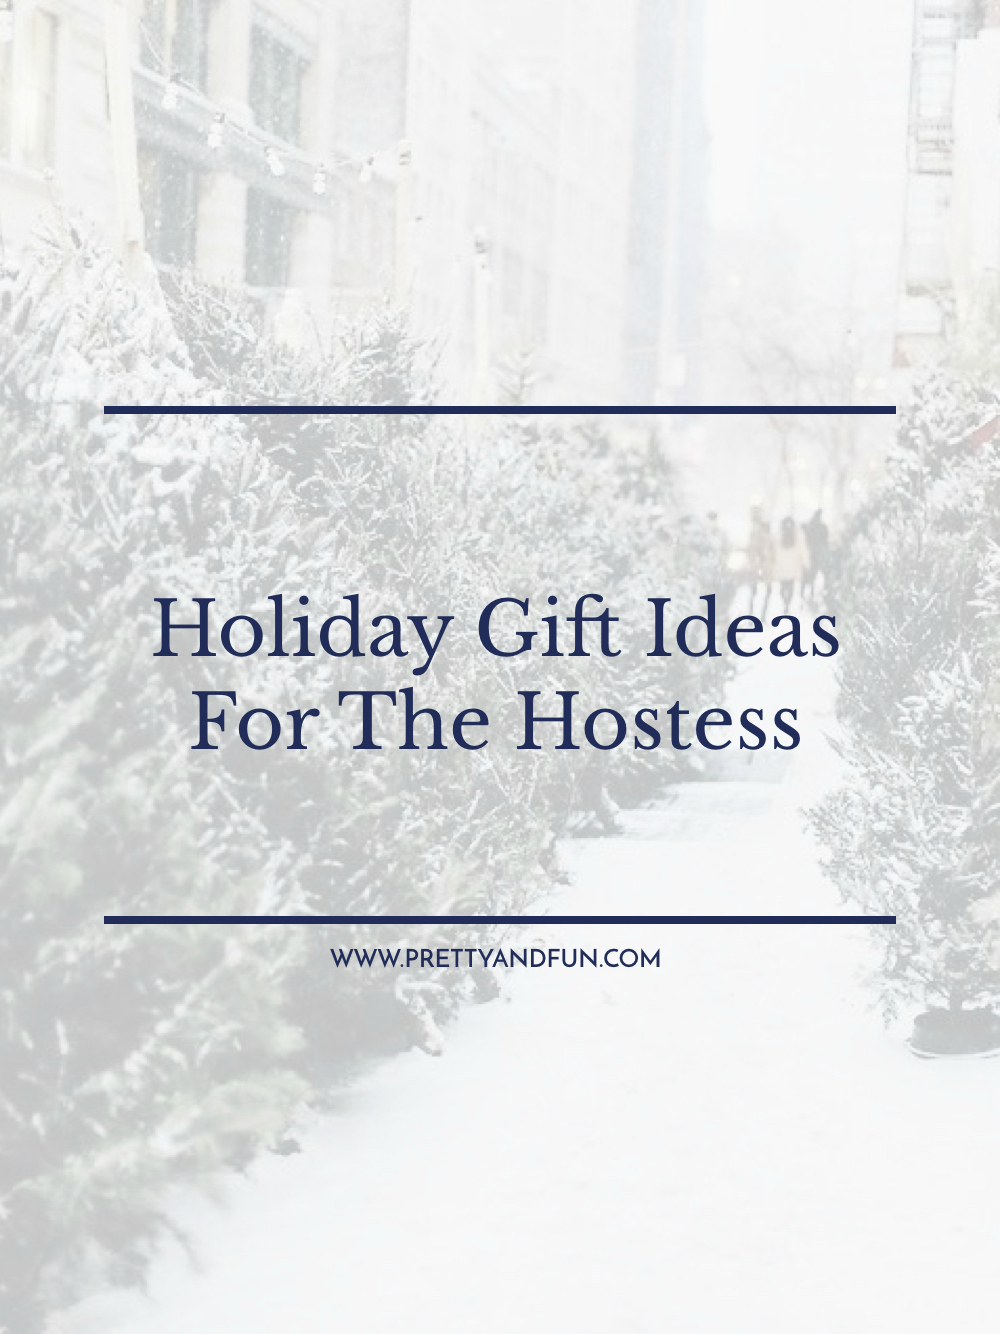 Holiday Gift Ideas for the Hostess.